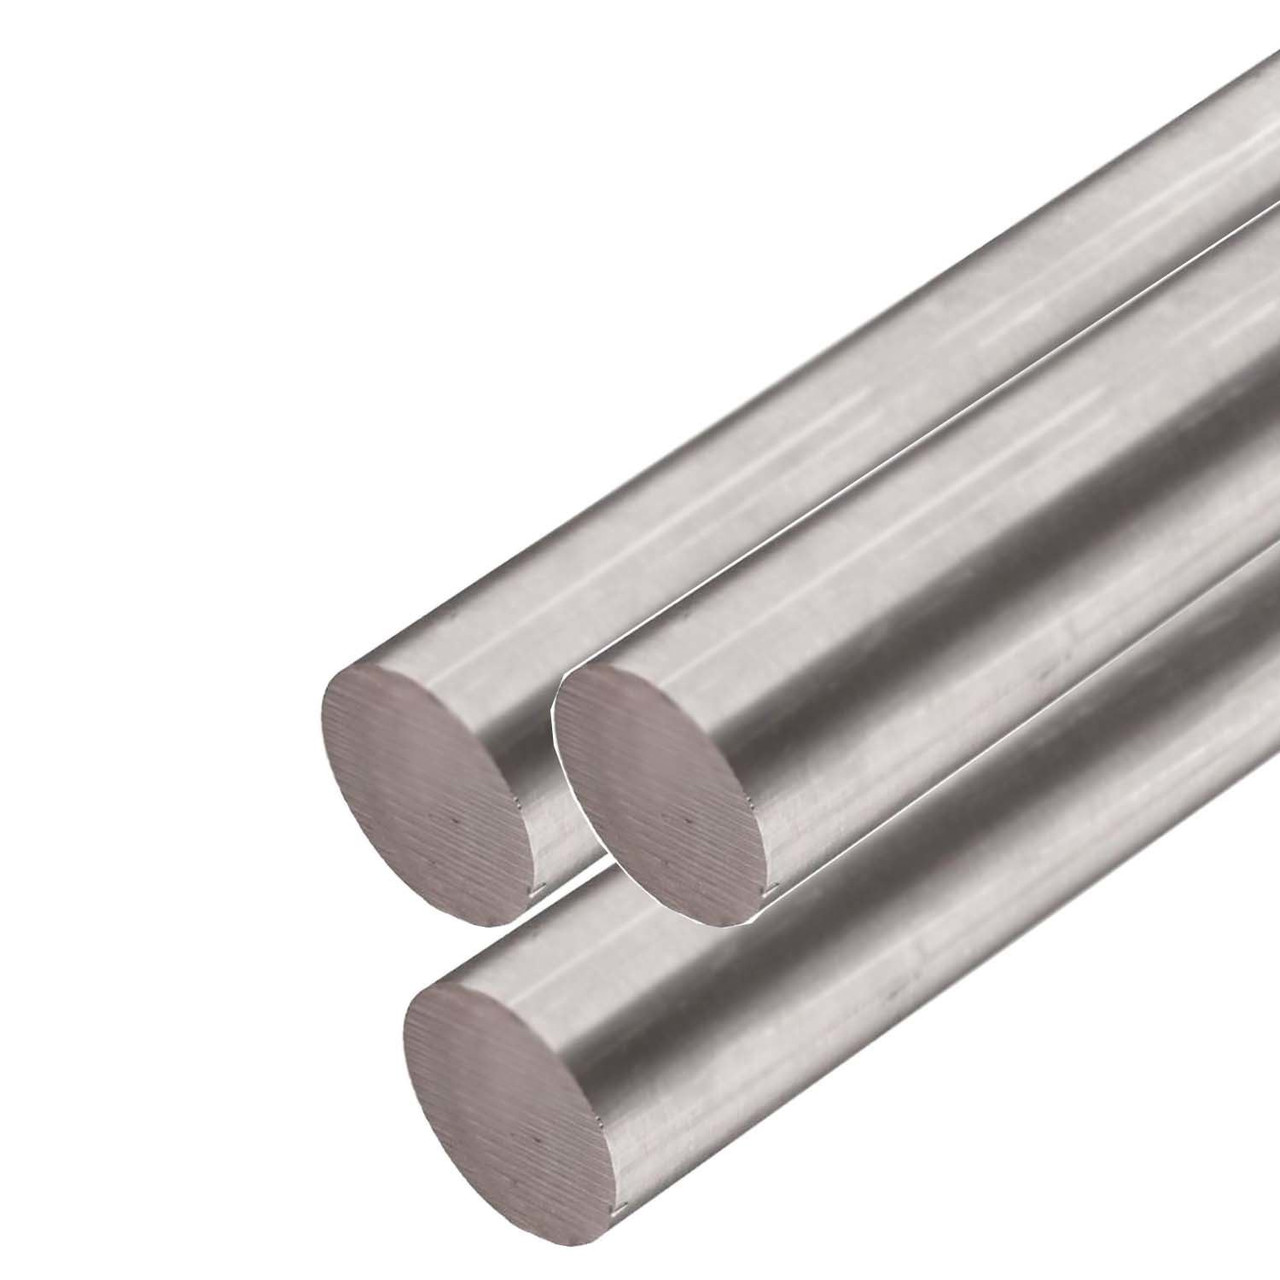 0.131 (1/8 inch Oversized) x 12 Feet (3 pieces, 48 inches), 15-5 Cond A CF Stainless Steel Round Rod